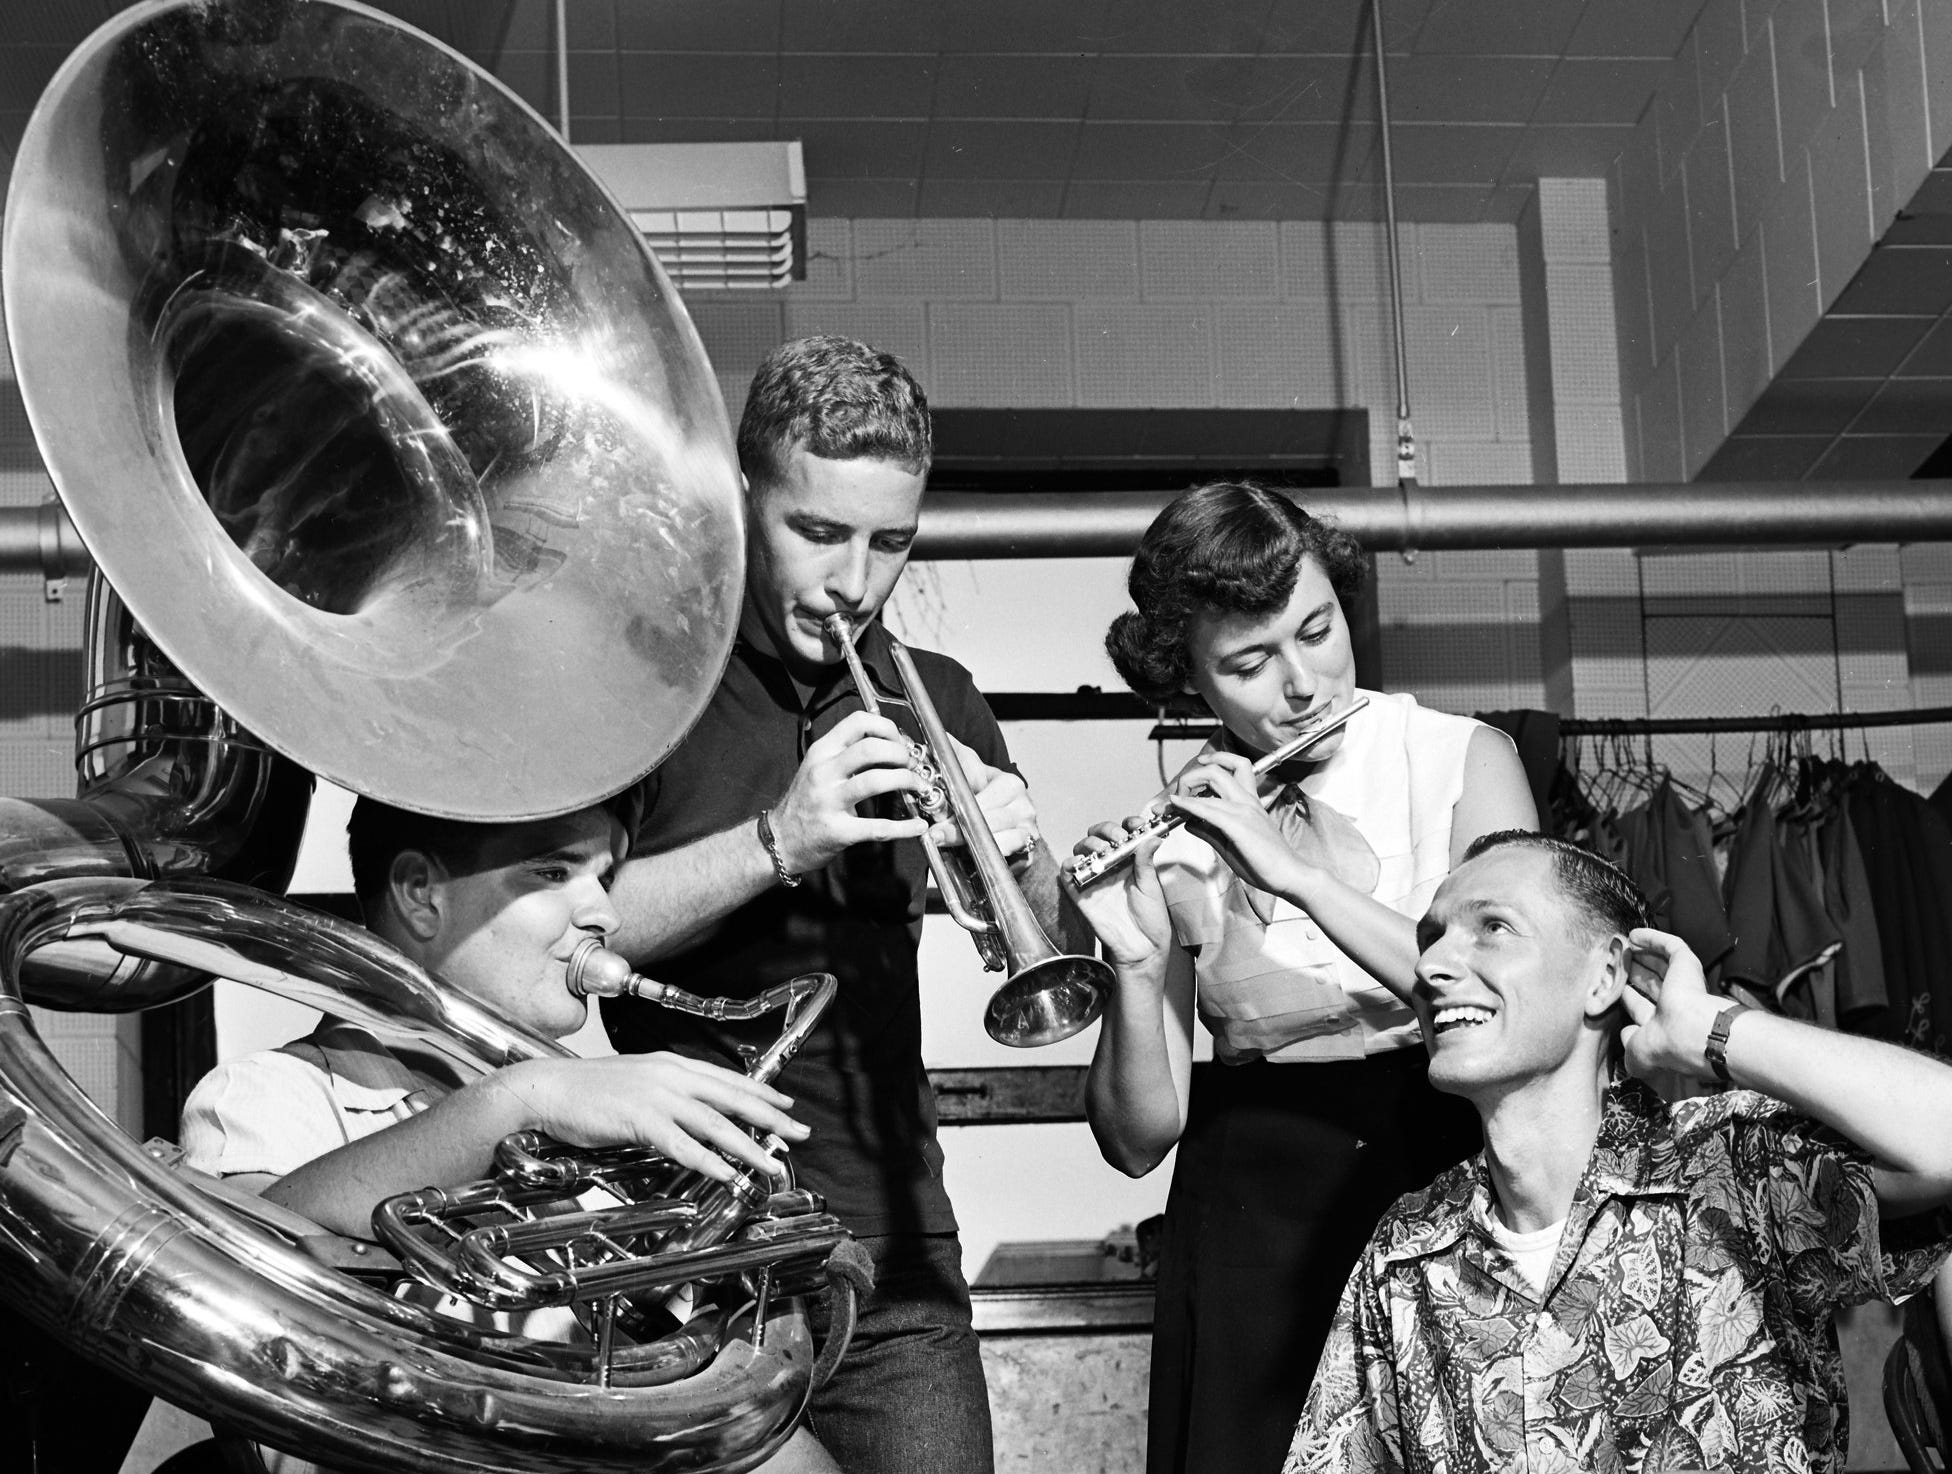 First rehearsals of the Memphis State Tiger band, in preparation for the Tigers' opening football game with Ole Miss were held on 15 Sep 1952 and Ralph G. Hale (Right), band director, called for all-out harmony.  Band members sounding off are (From Left), Dan McHugh of 1270 Peach, a freshman; Jackie Jones of Caruthersville, MO, a freshman; and Pat Campbell of 697 North McLean, a sophomore.